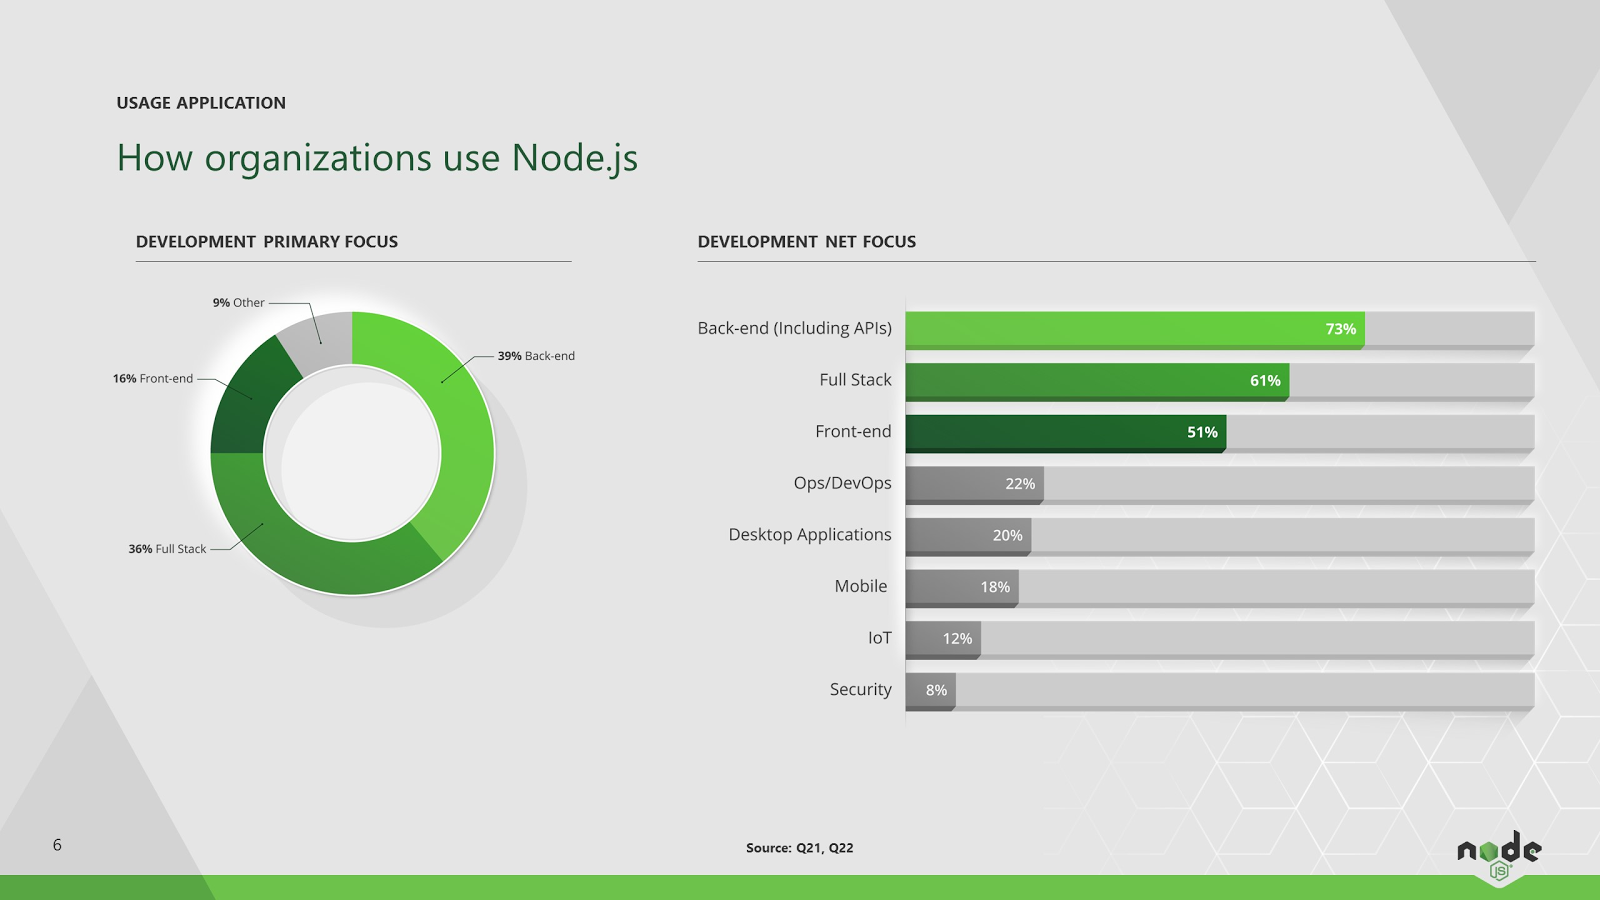 Nodejs Emerging As The Universal Development Framework For A Universals Rear Axle Available Part Diagrams 10 In Front Suspension Time With On Back End Full Stack And Although Use Is Beginning To Rise Ops Devops Sector Mobile Well